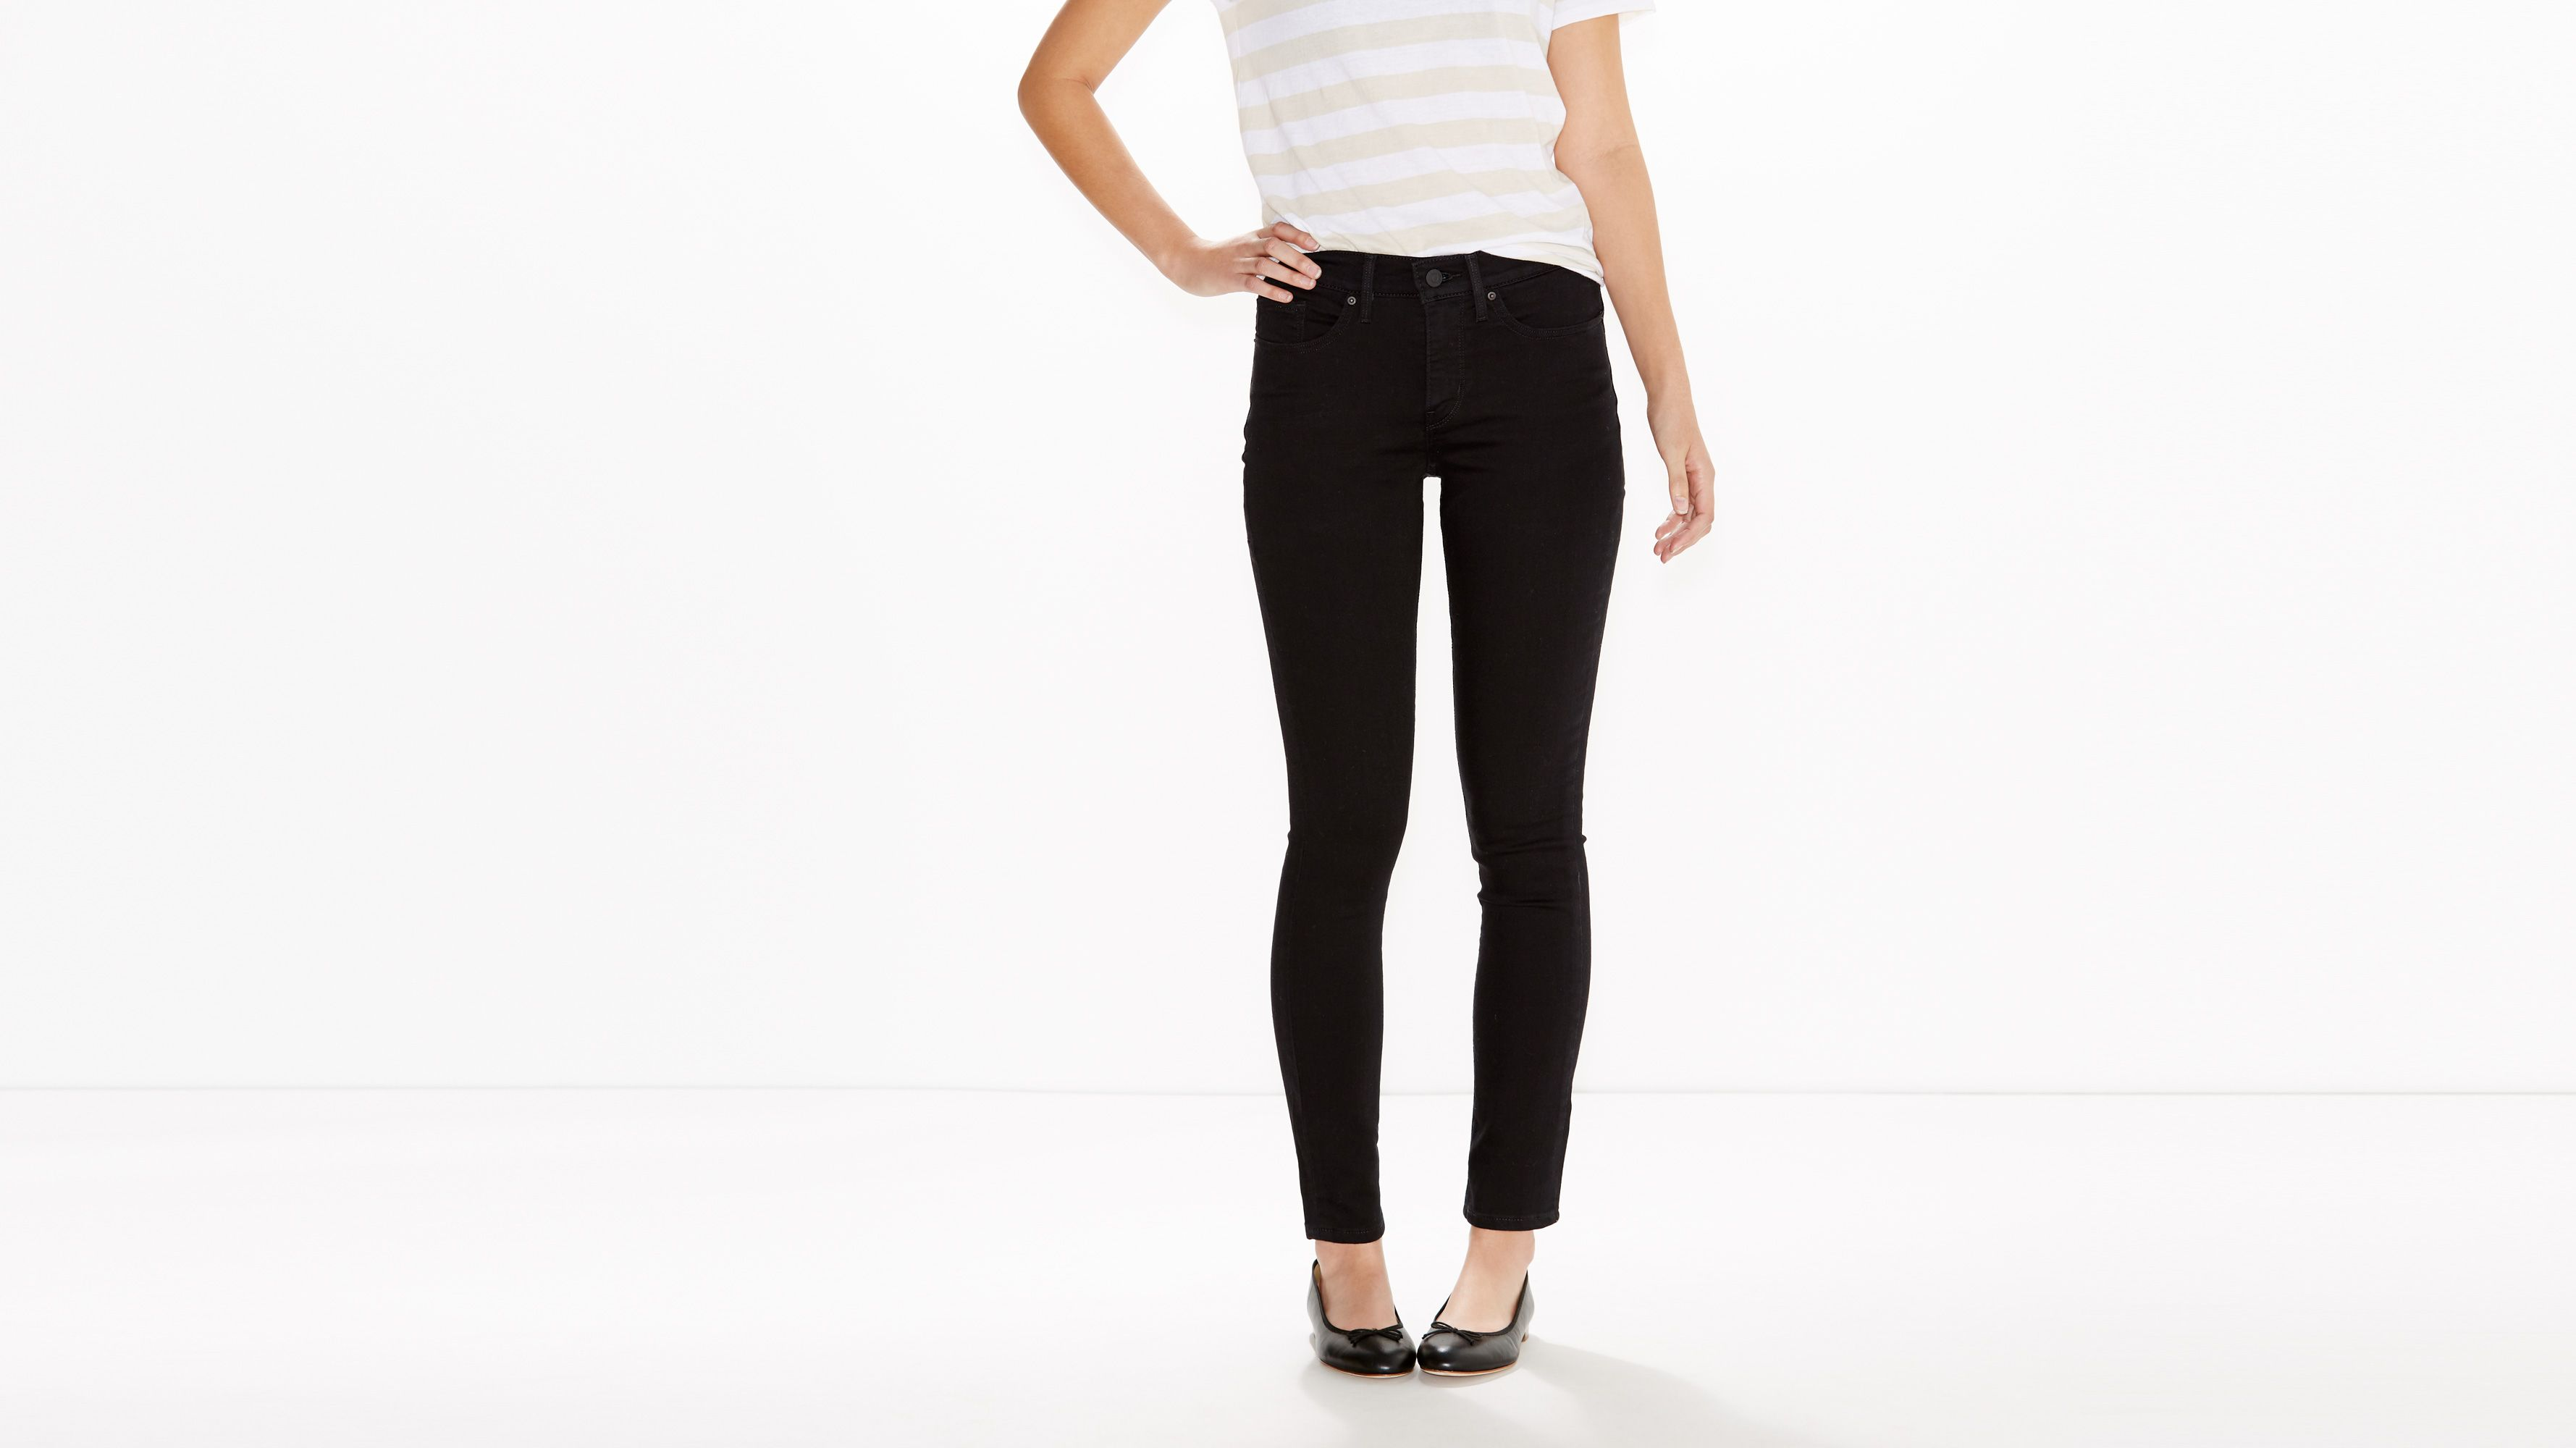 Image result for 311 SHAPING SKINNY JEANS black